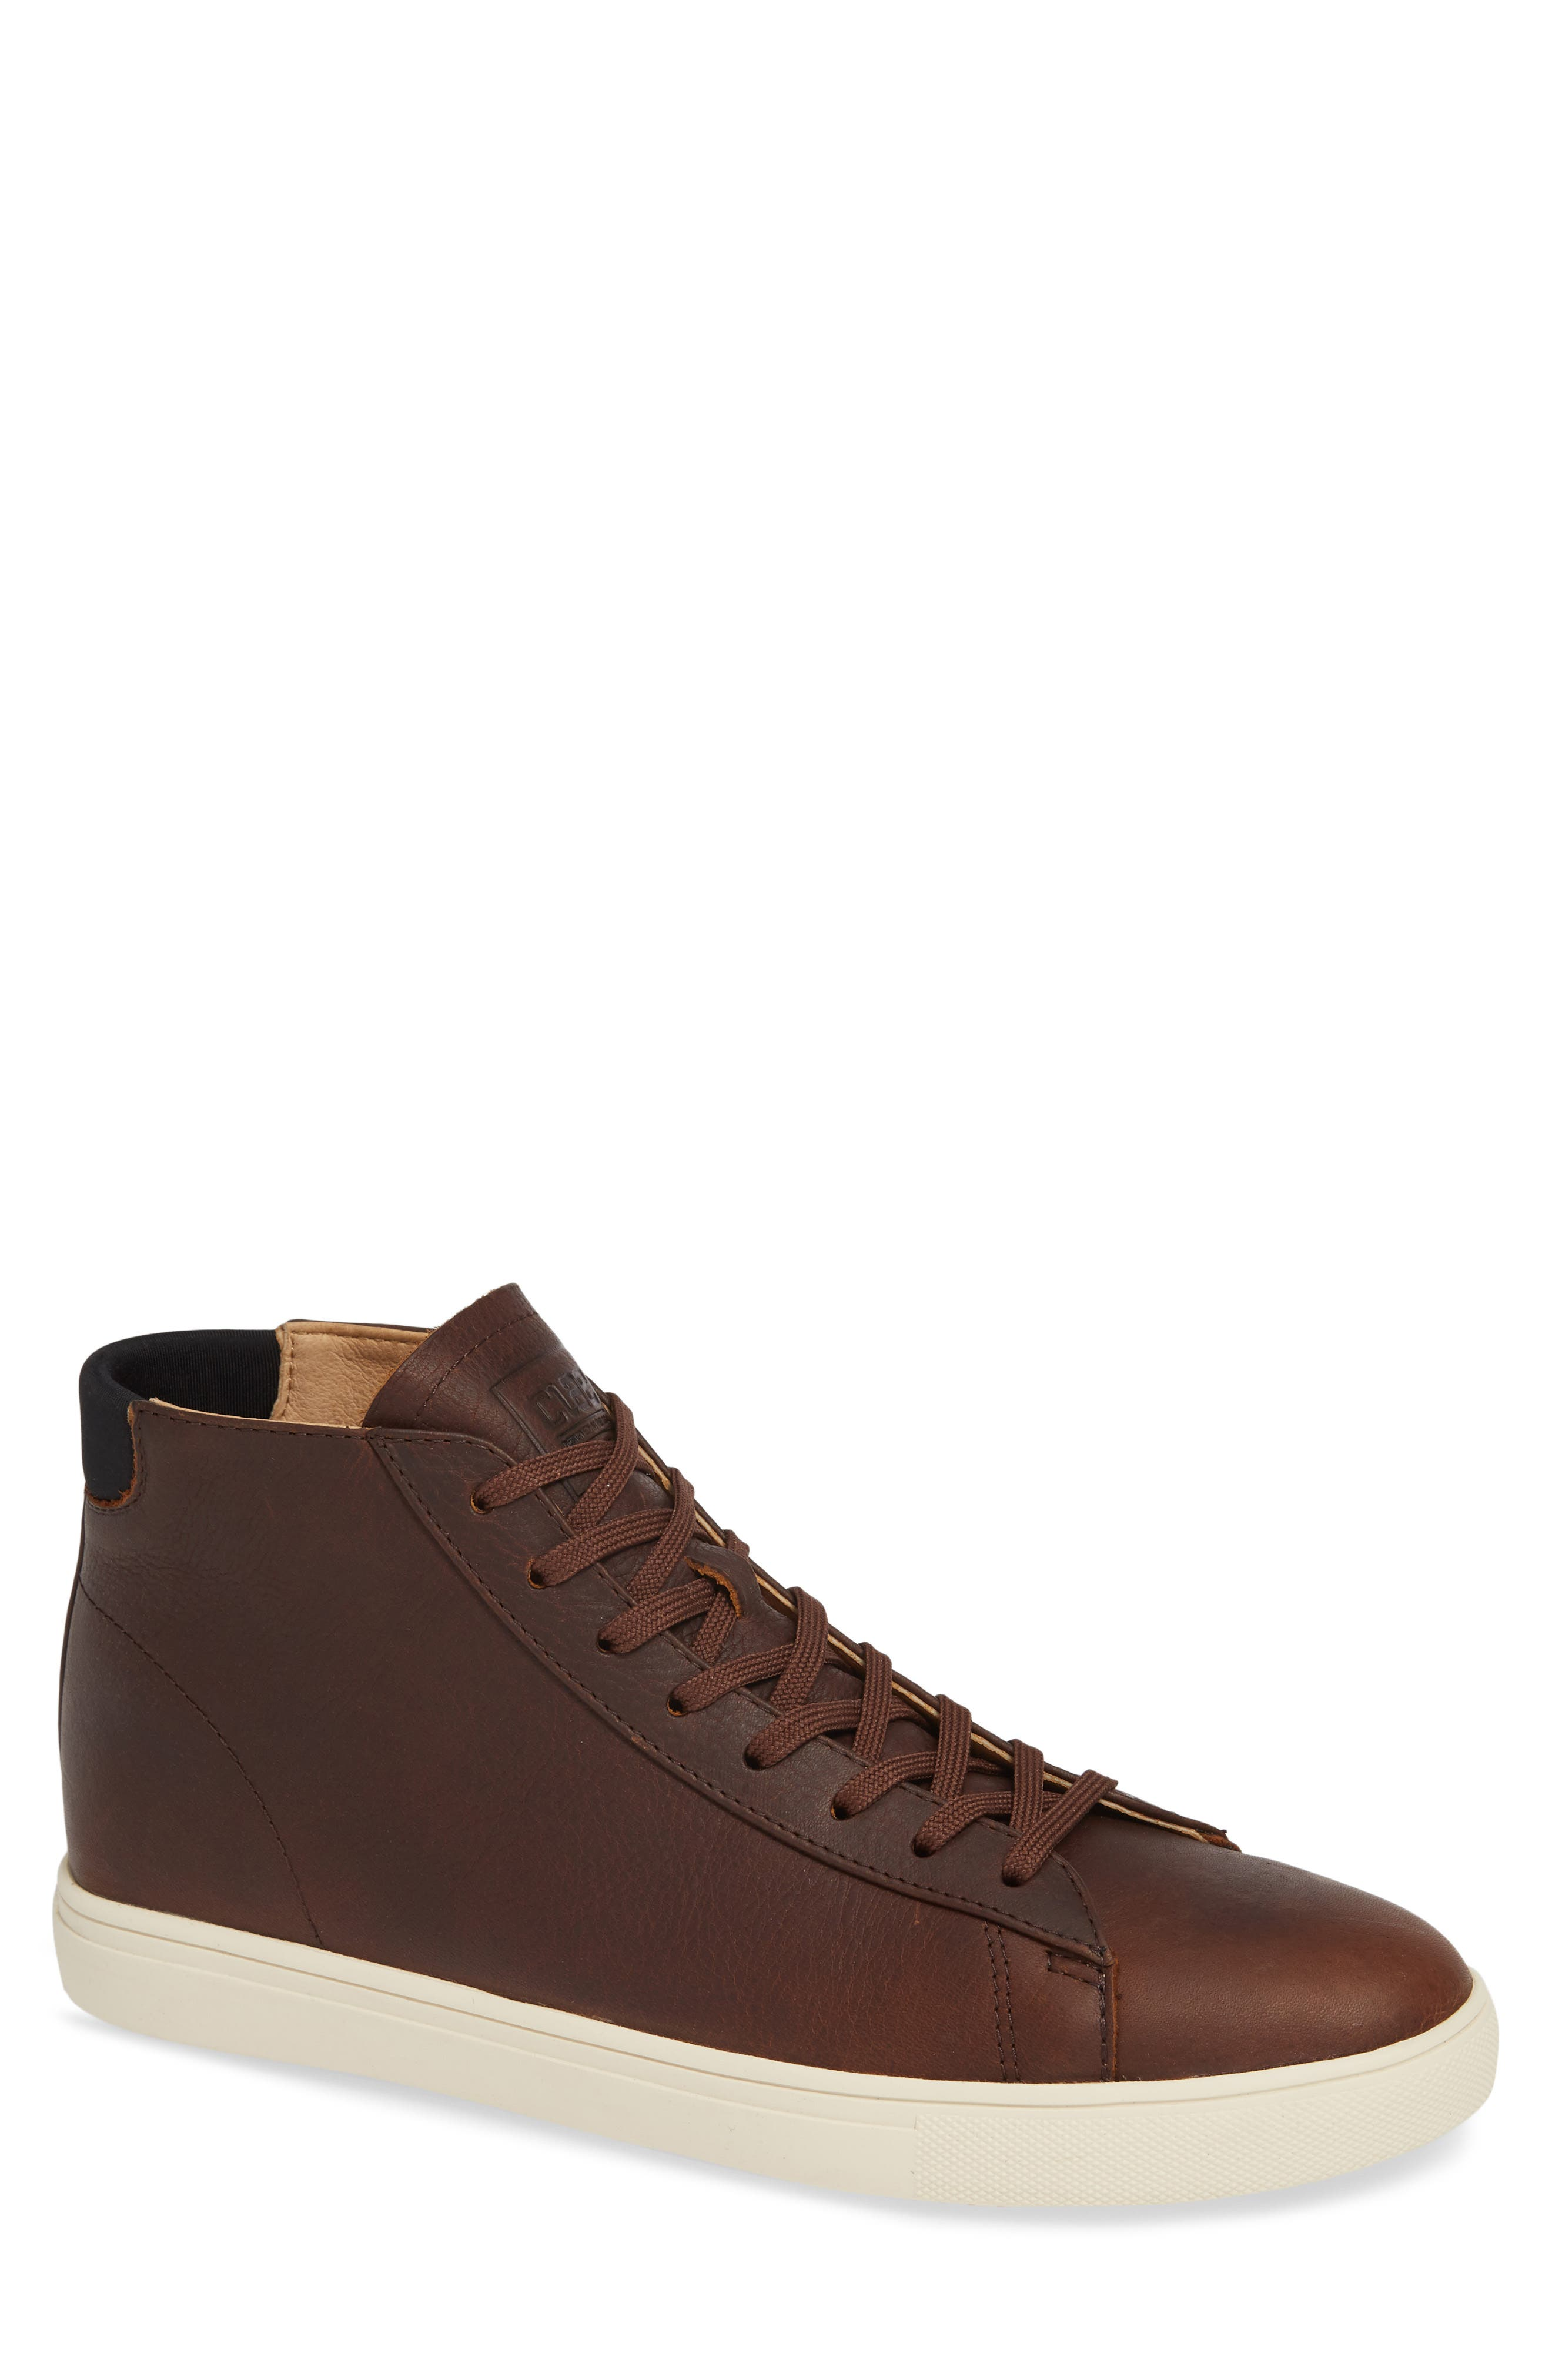 CLAE 'Bradley Mid' Sneaker in Cocoa Leather